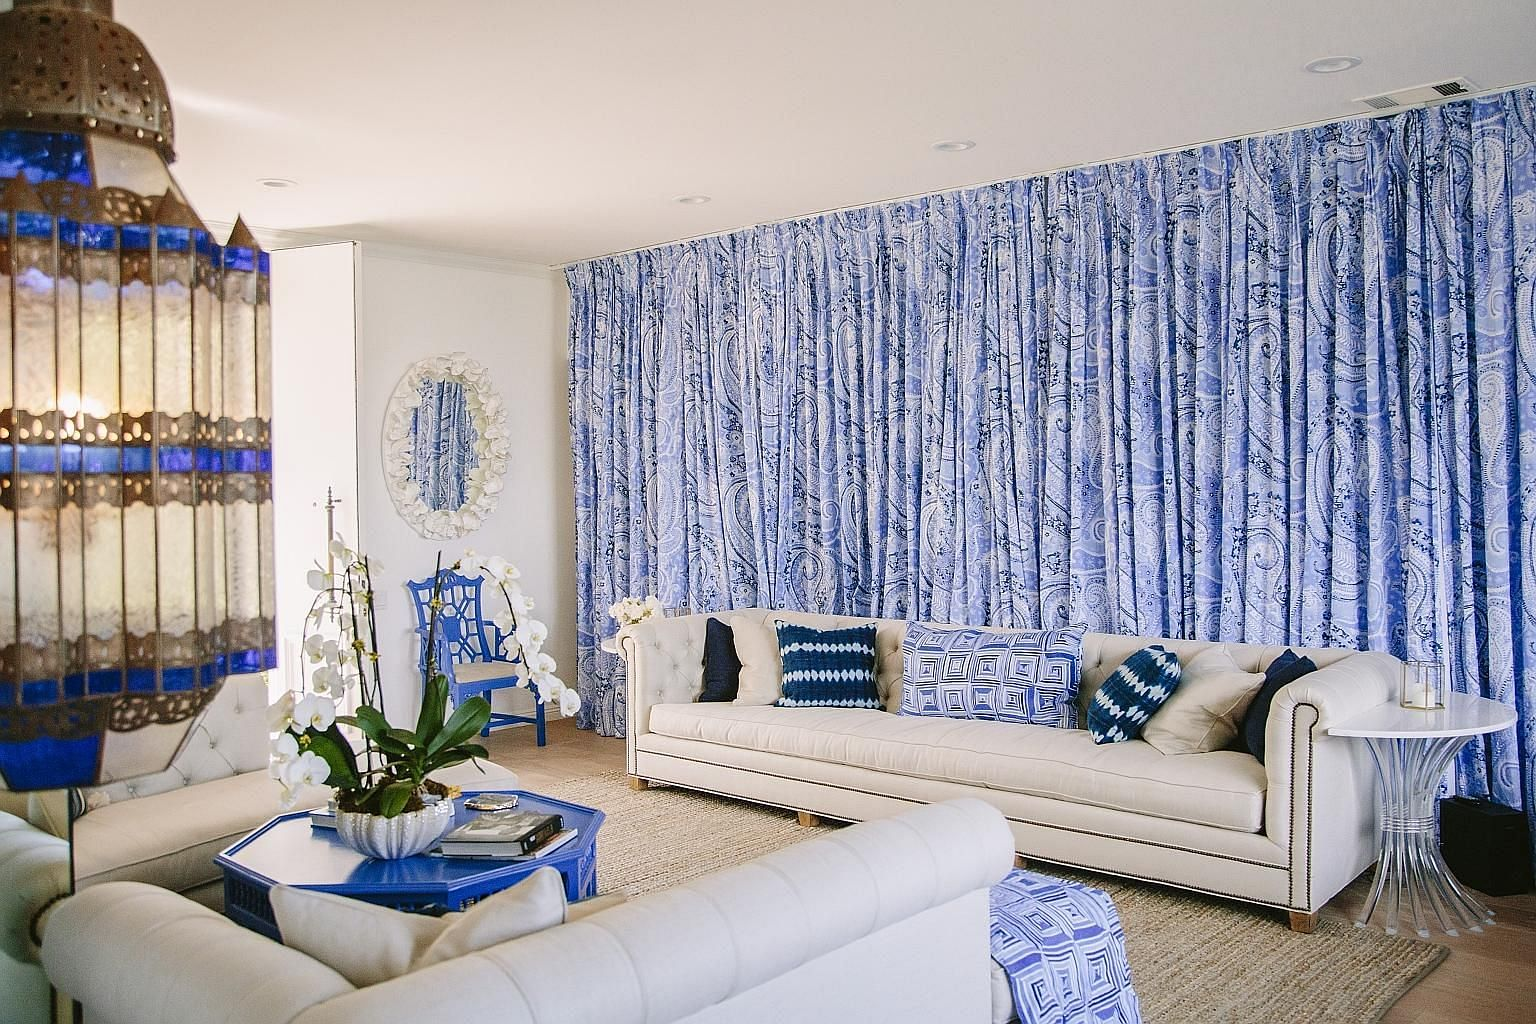 A Palm Desert home (above), which still features the original lime-green and white scheme (above) of its 1971 decor; and a room in another home, decorated with blue paisley-print drapes (left). A poodle-cut tree in the Marrakesh residential community